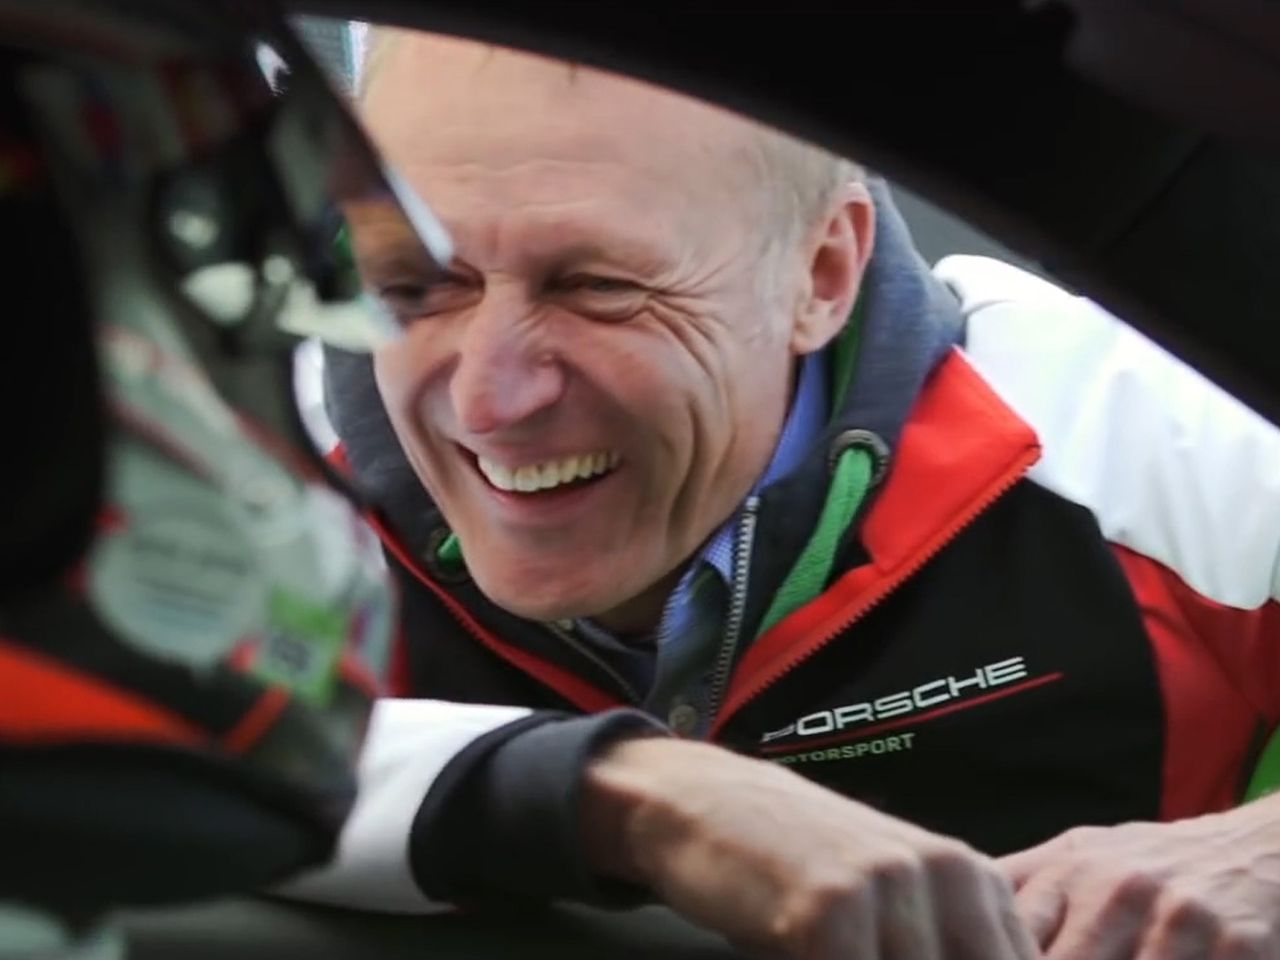 Andreas Preuninger, director of the GT model line, is visibly delighted as he congratulates Estre on the high-speed lap.